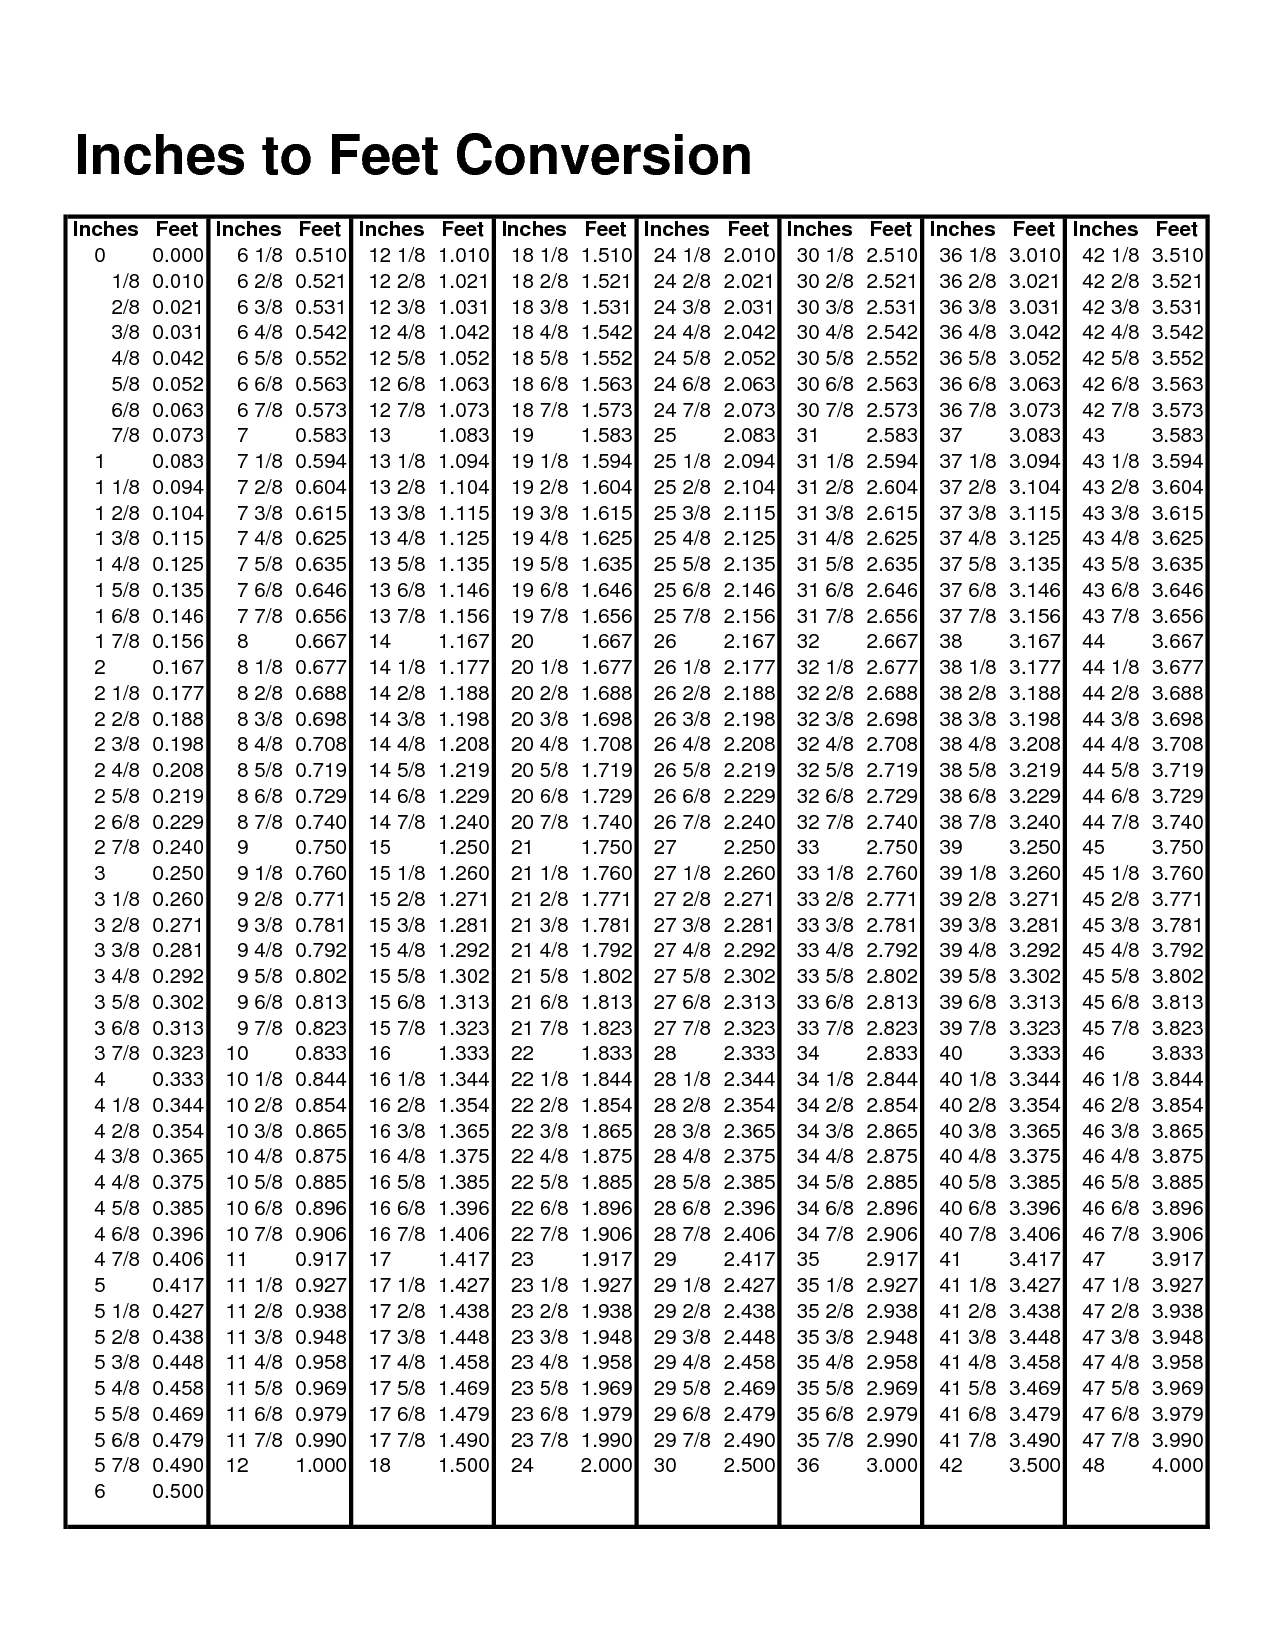 Height Conversion Table Feet Inches To Meters